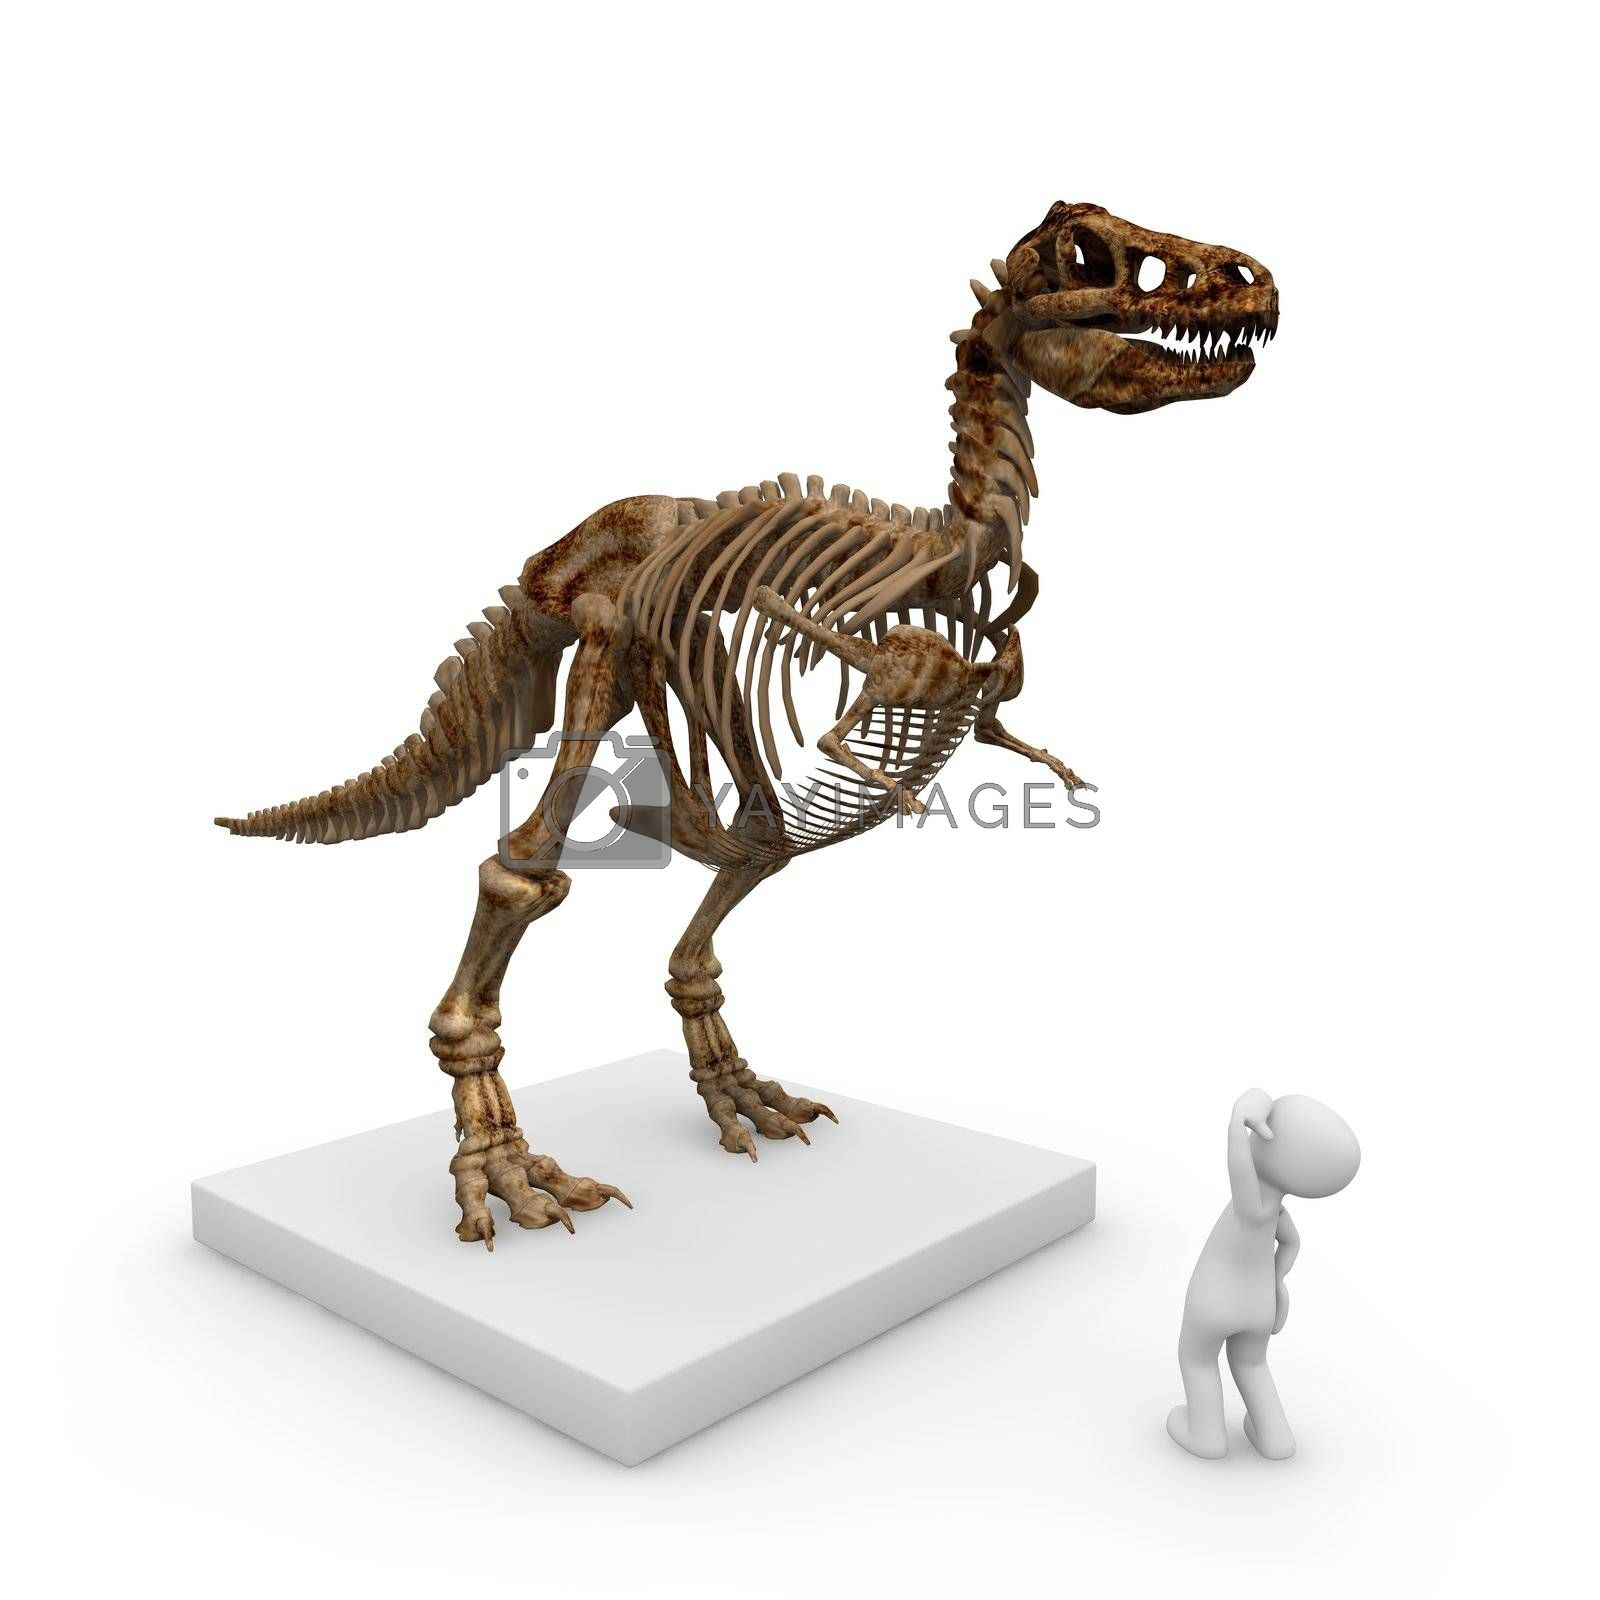 The skeleton of a dinosaur in the museum is a huge piece of the old exhibition